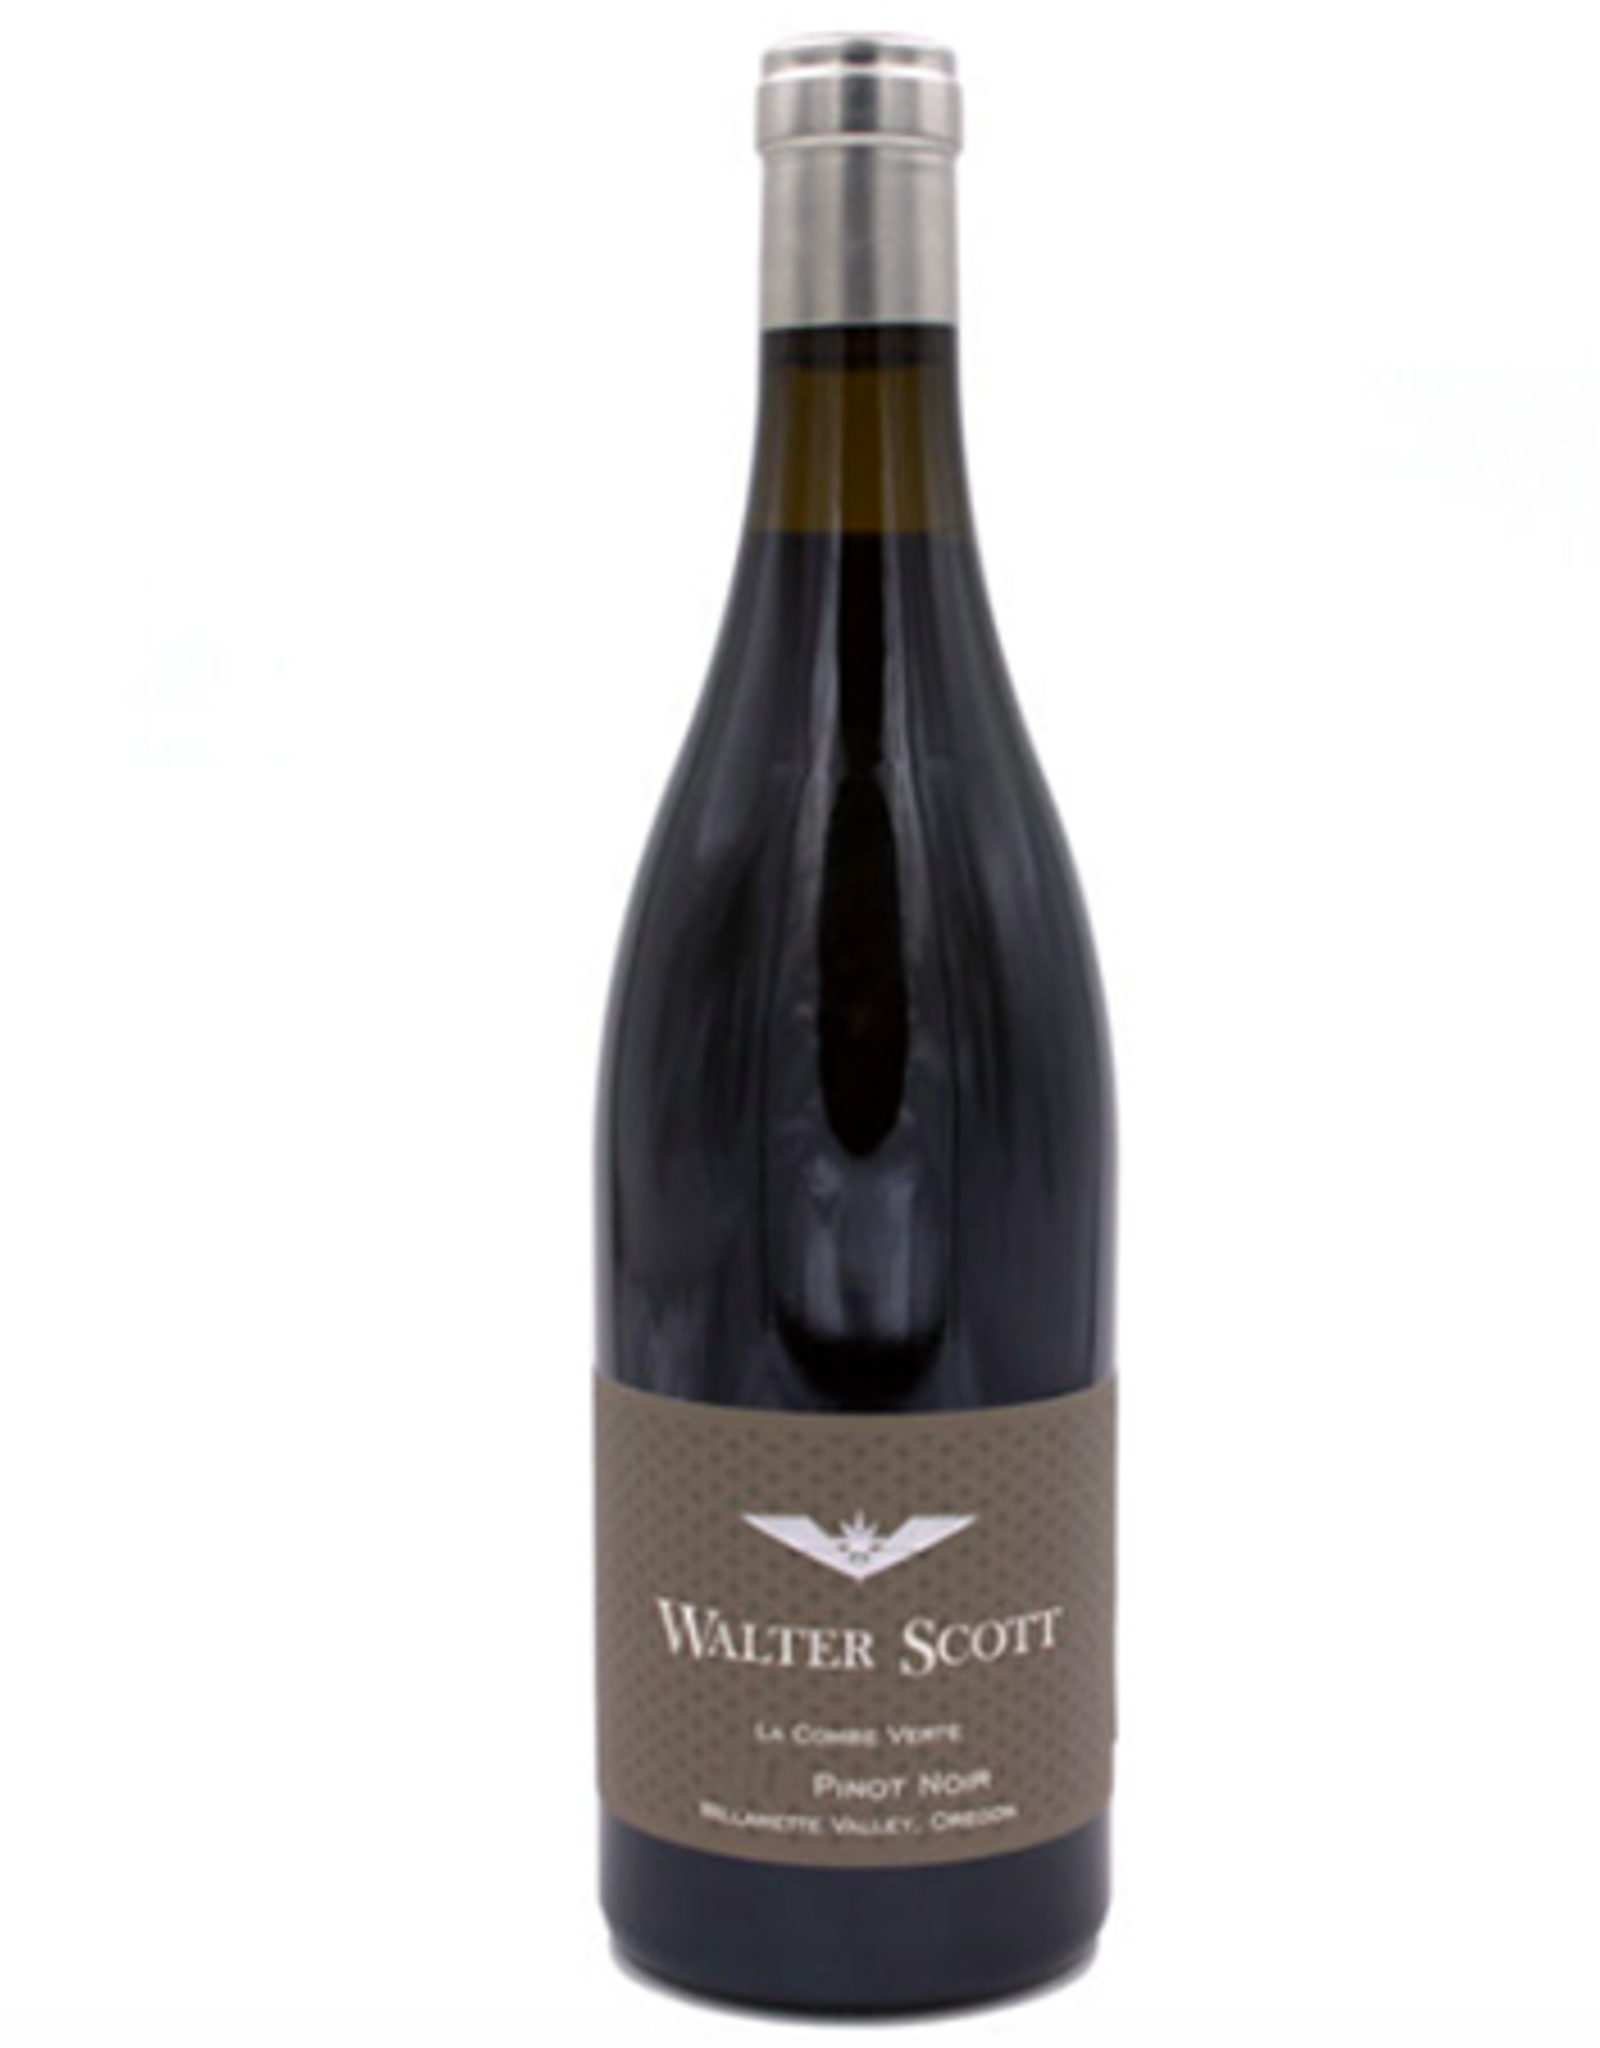 Walter Scott Pinot Noir La Combe Verte Willamette Valley 2019